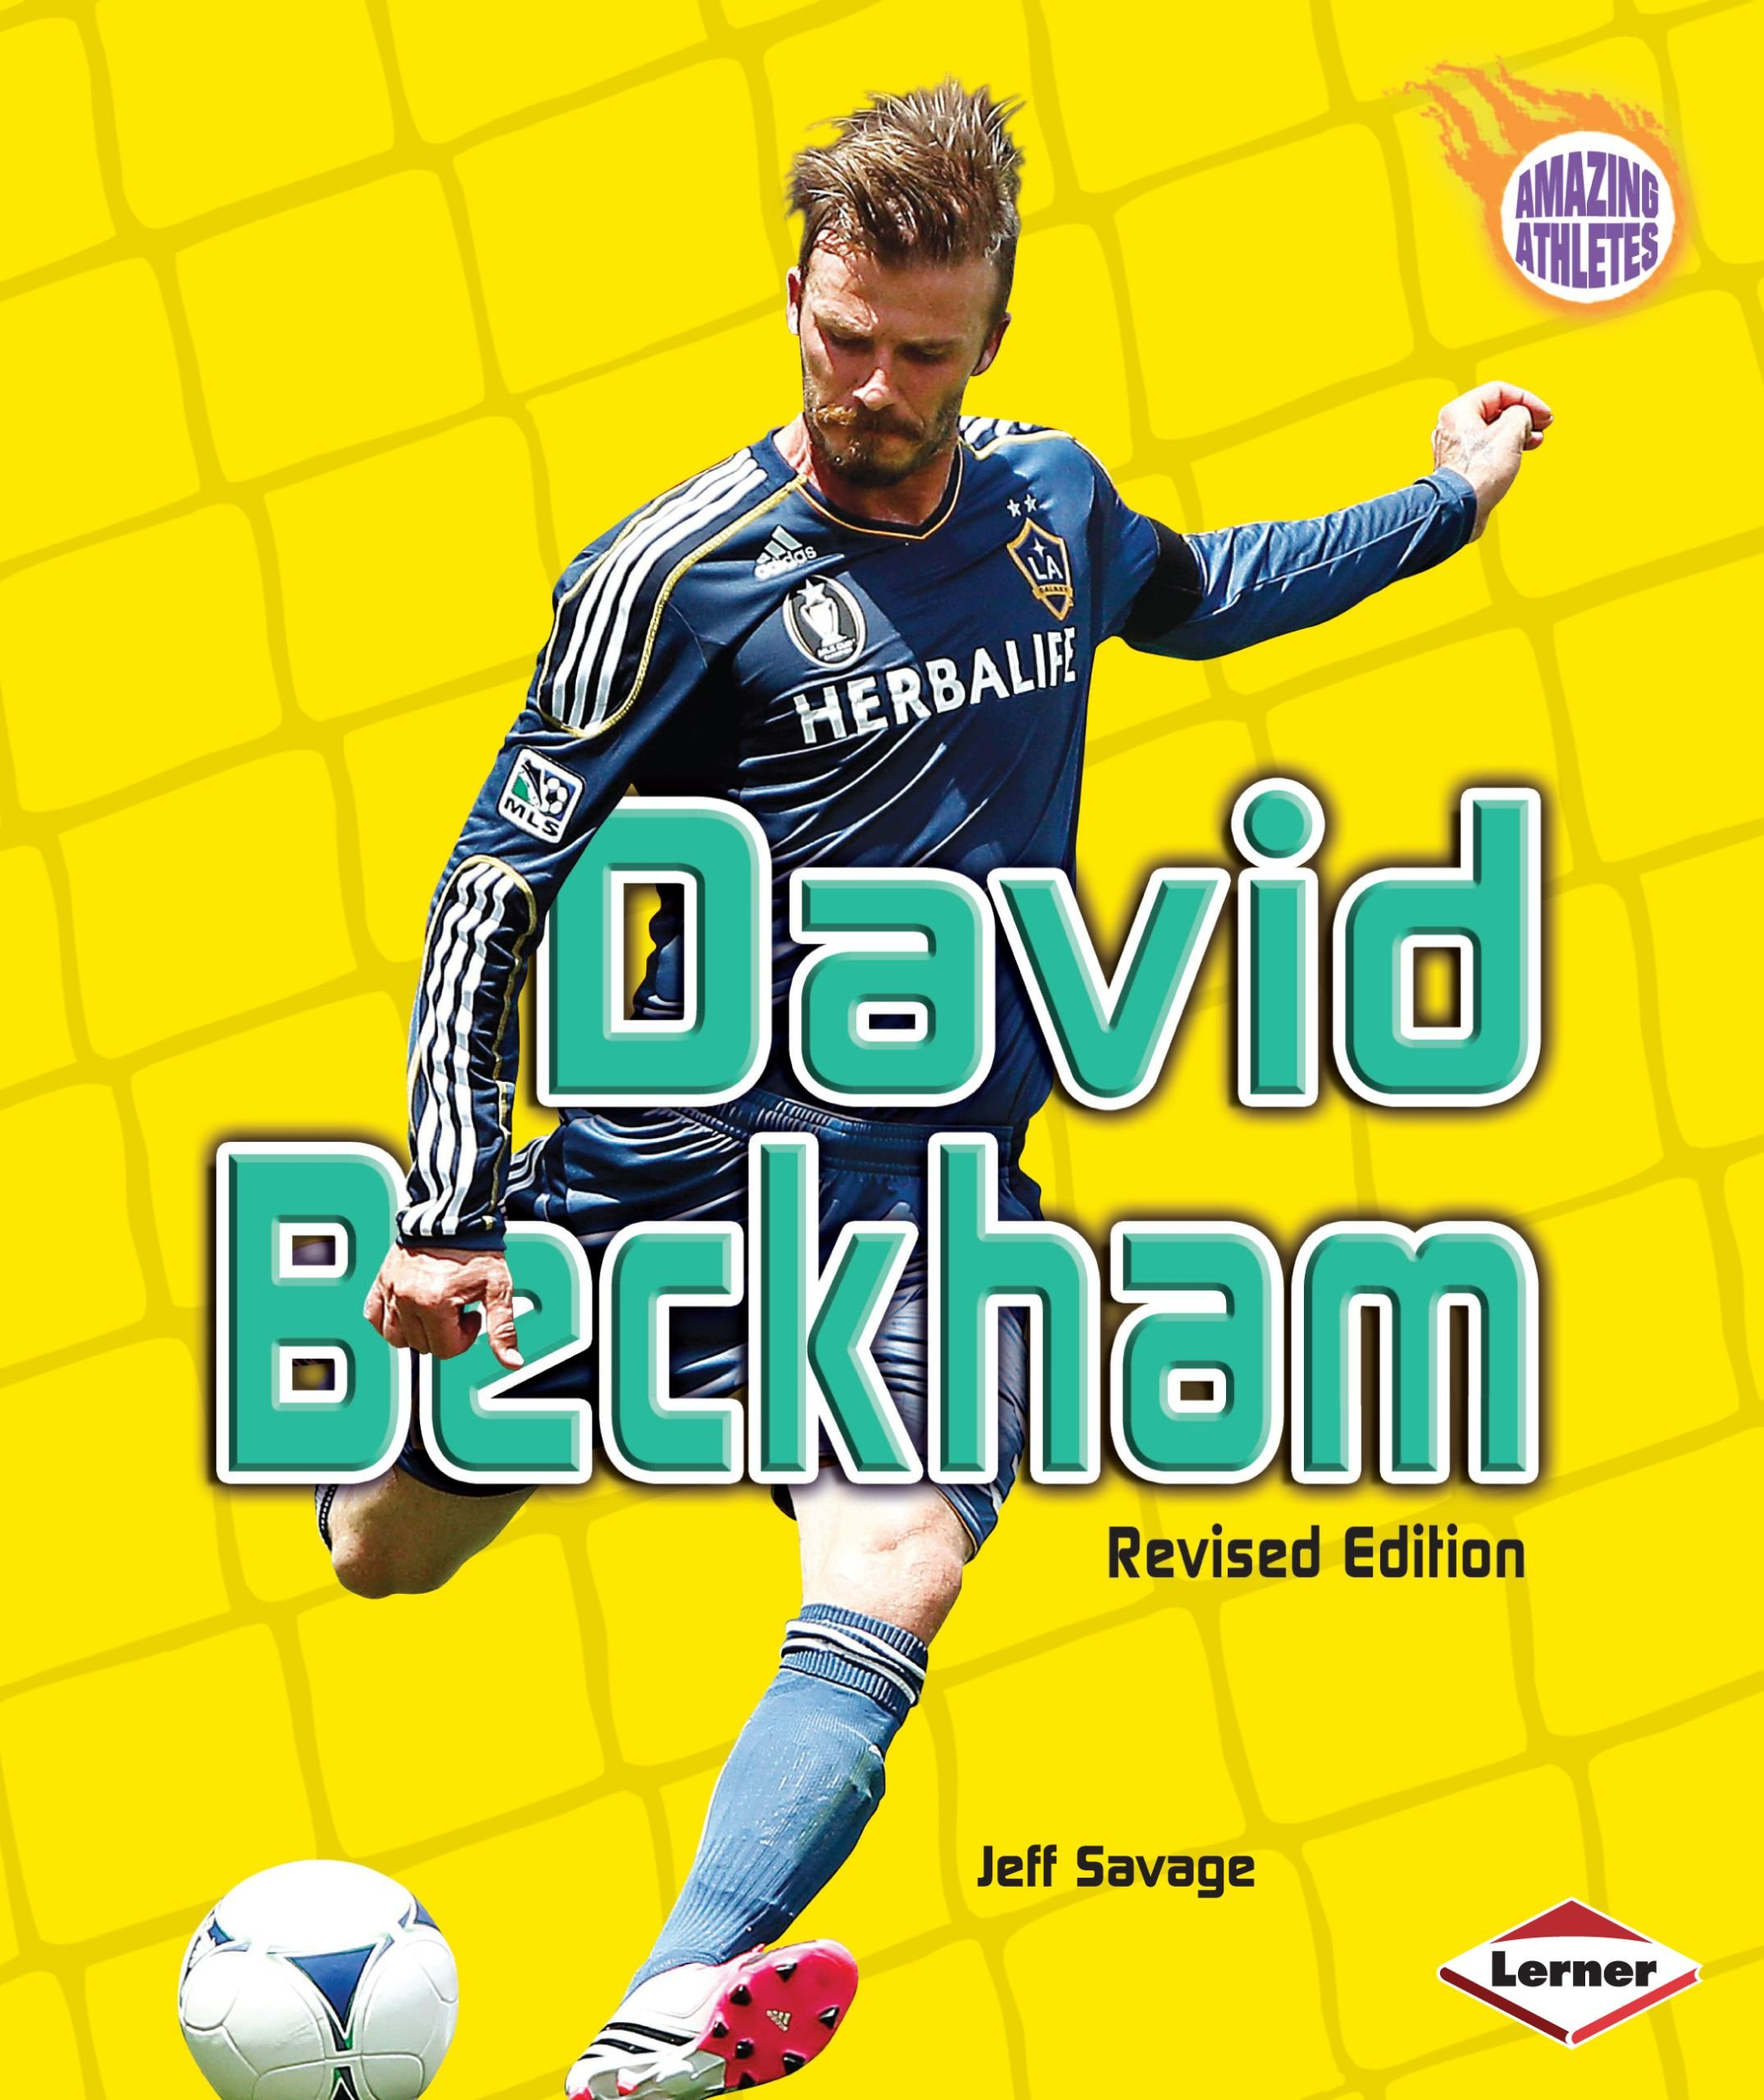 david-beckham-2nd-edition-amazing-athletes